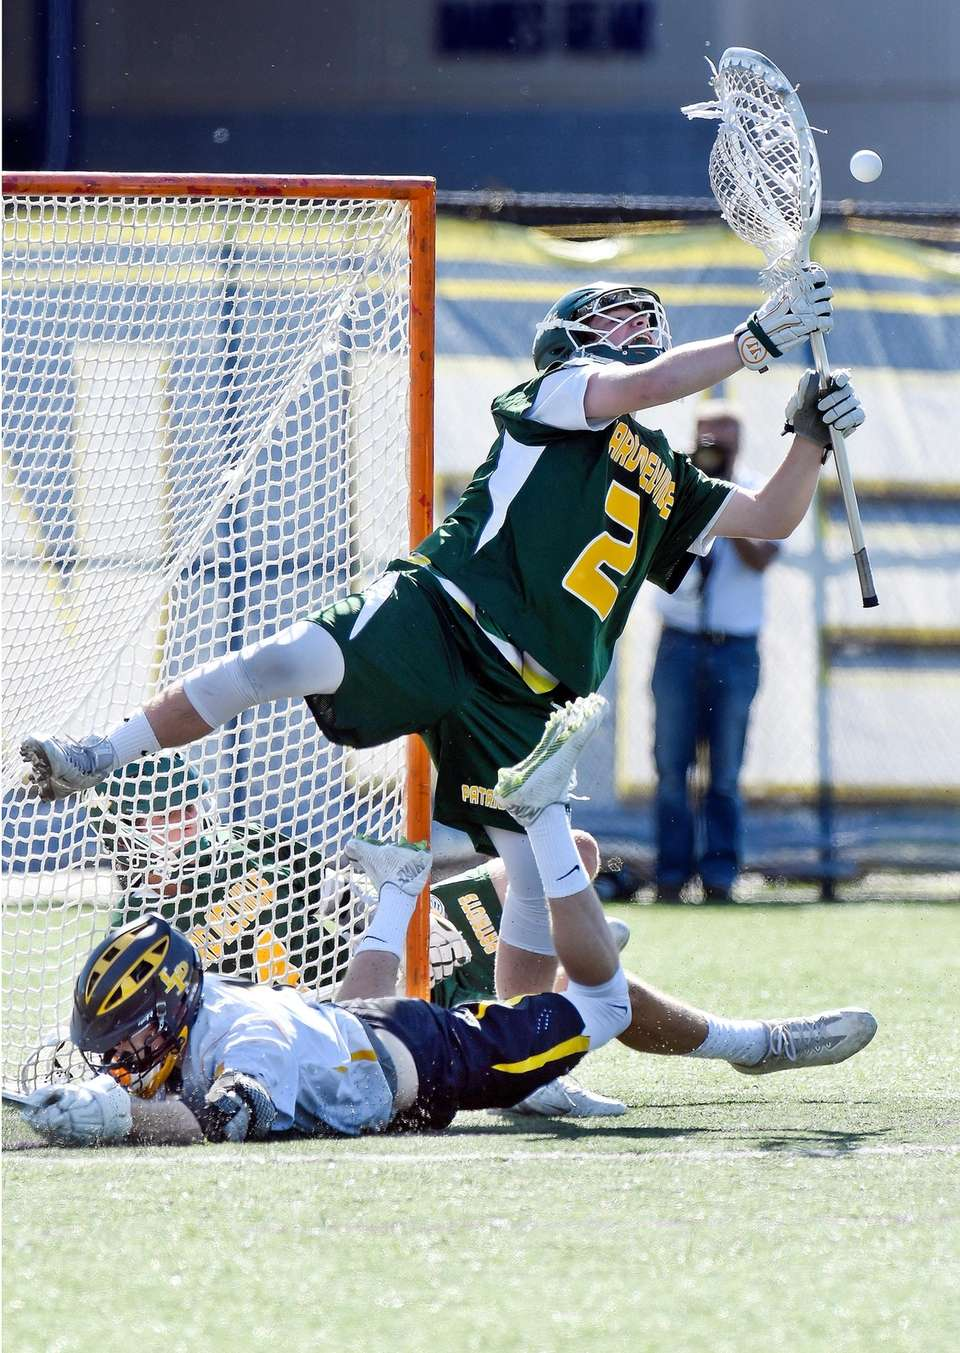 Ward Melville goalkeeper Perry Cassidy (2) defends against